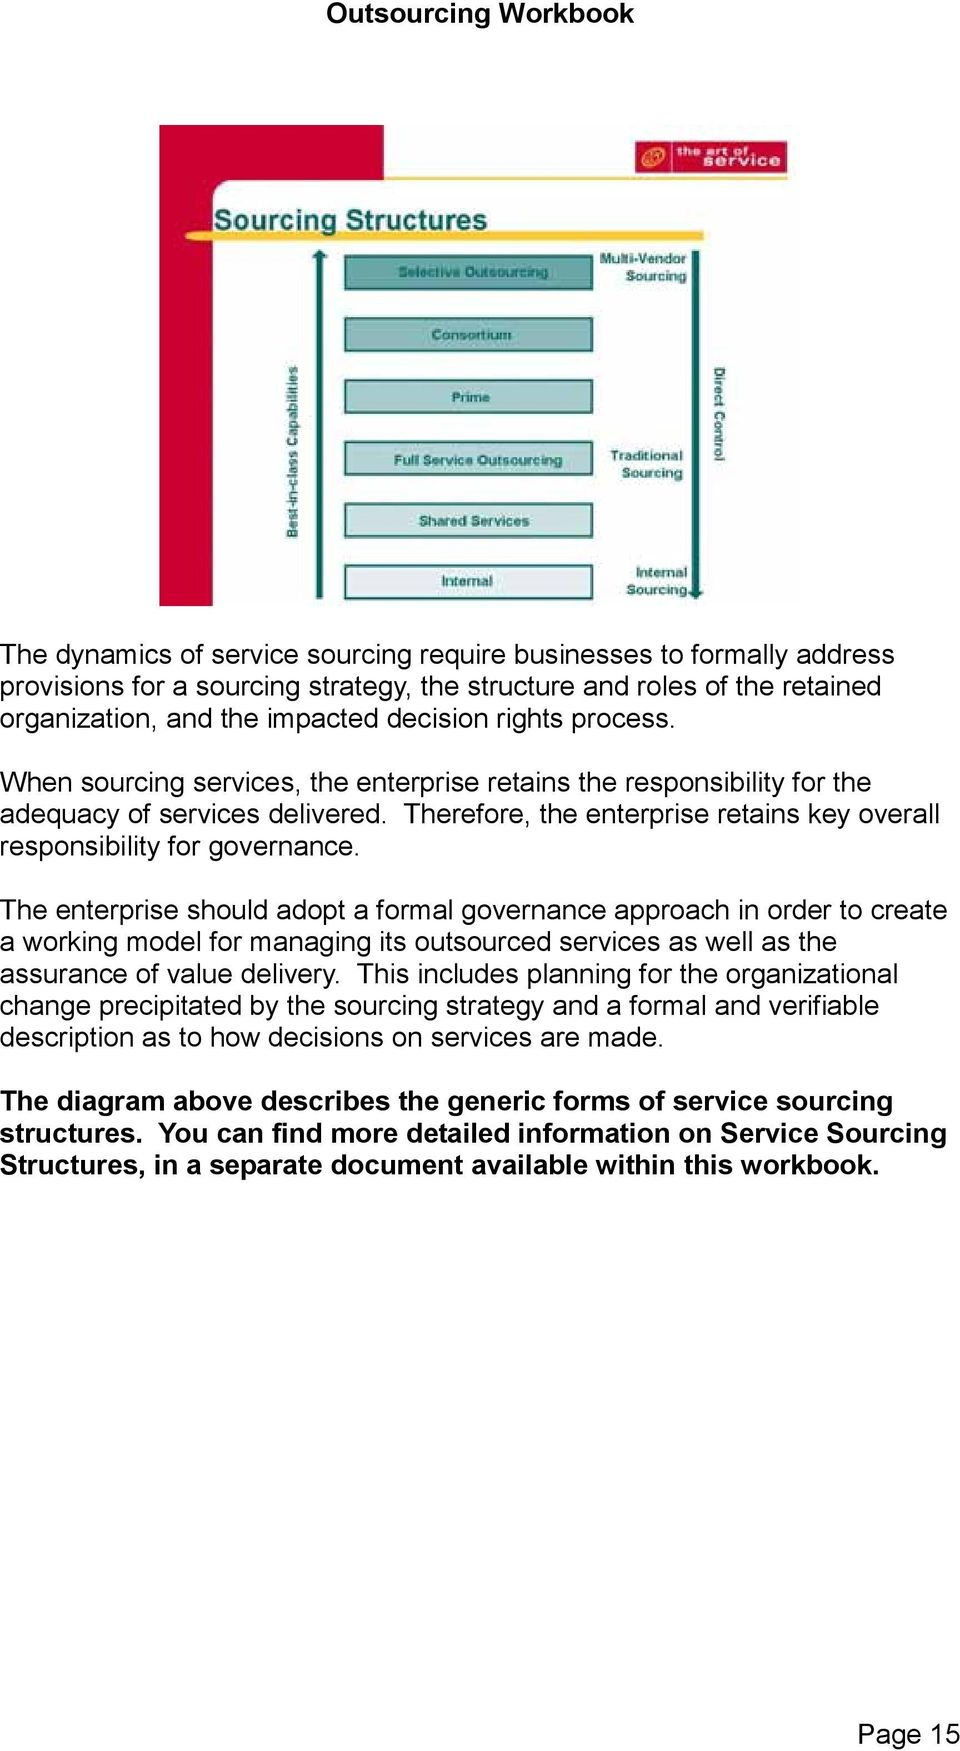 The enterprise should adopt a formal governance approach in order to create a working model for managing its outsourced services as well as the assurance of value delivery.